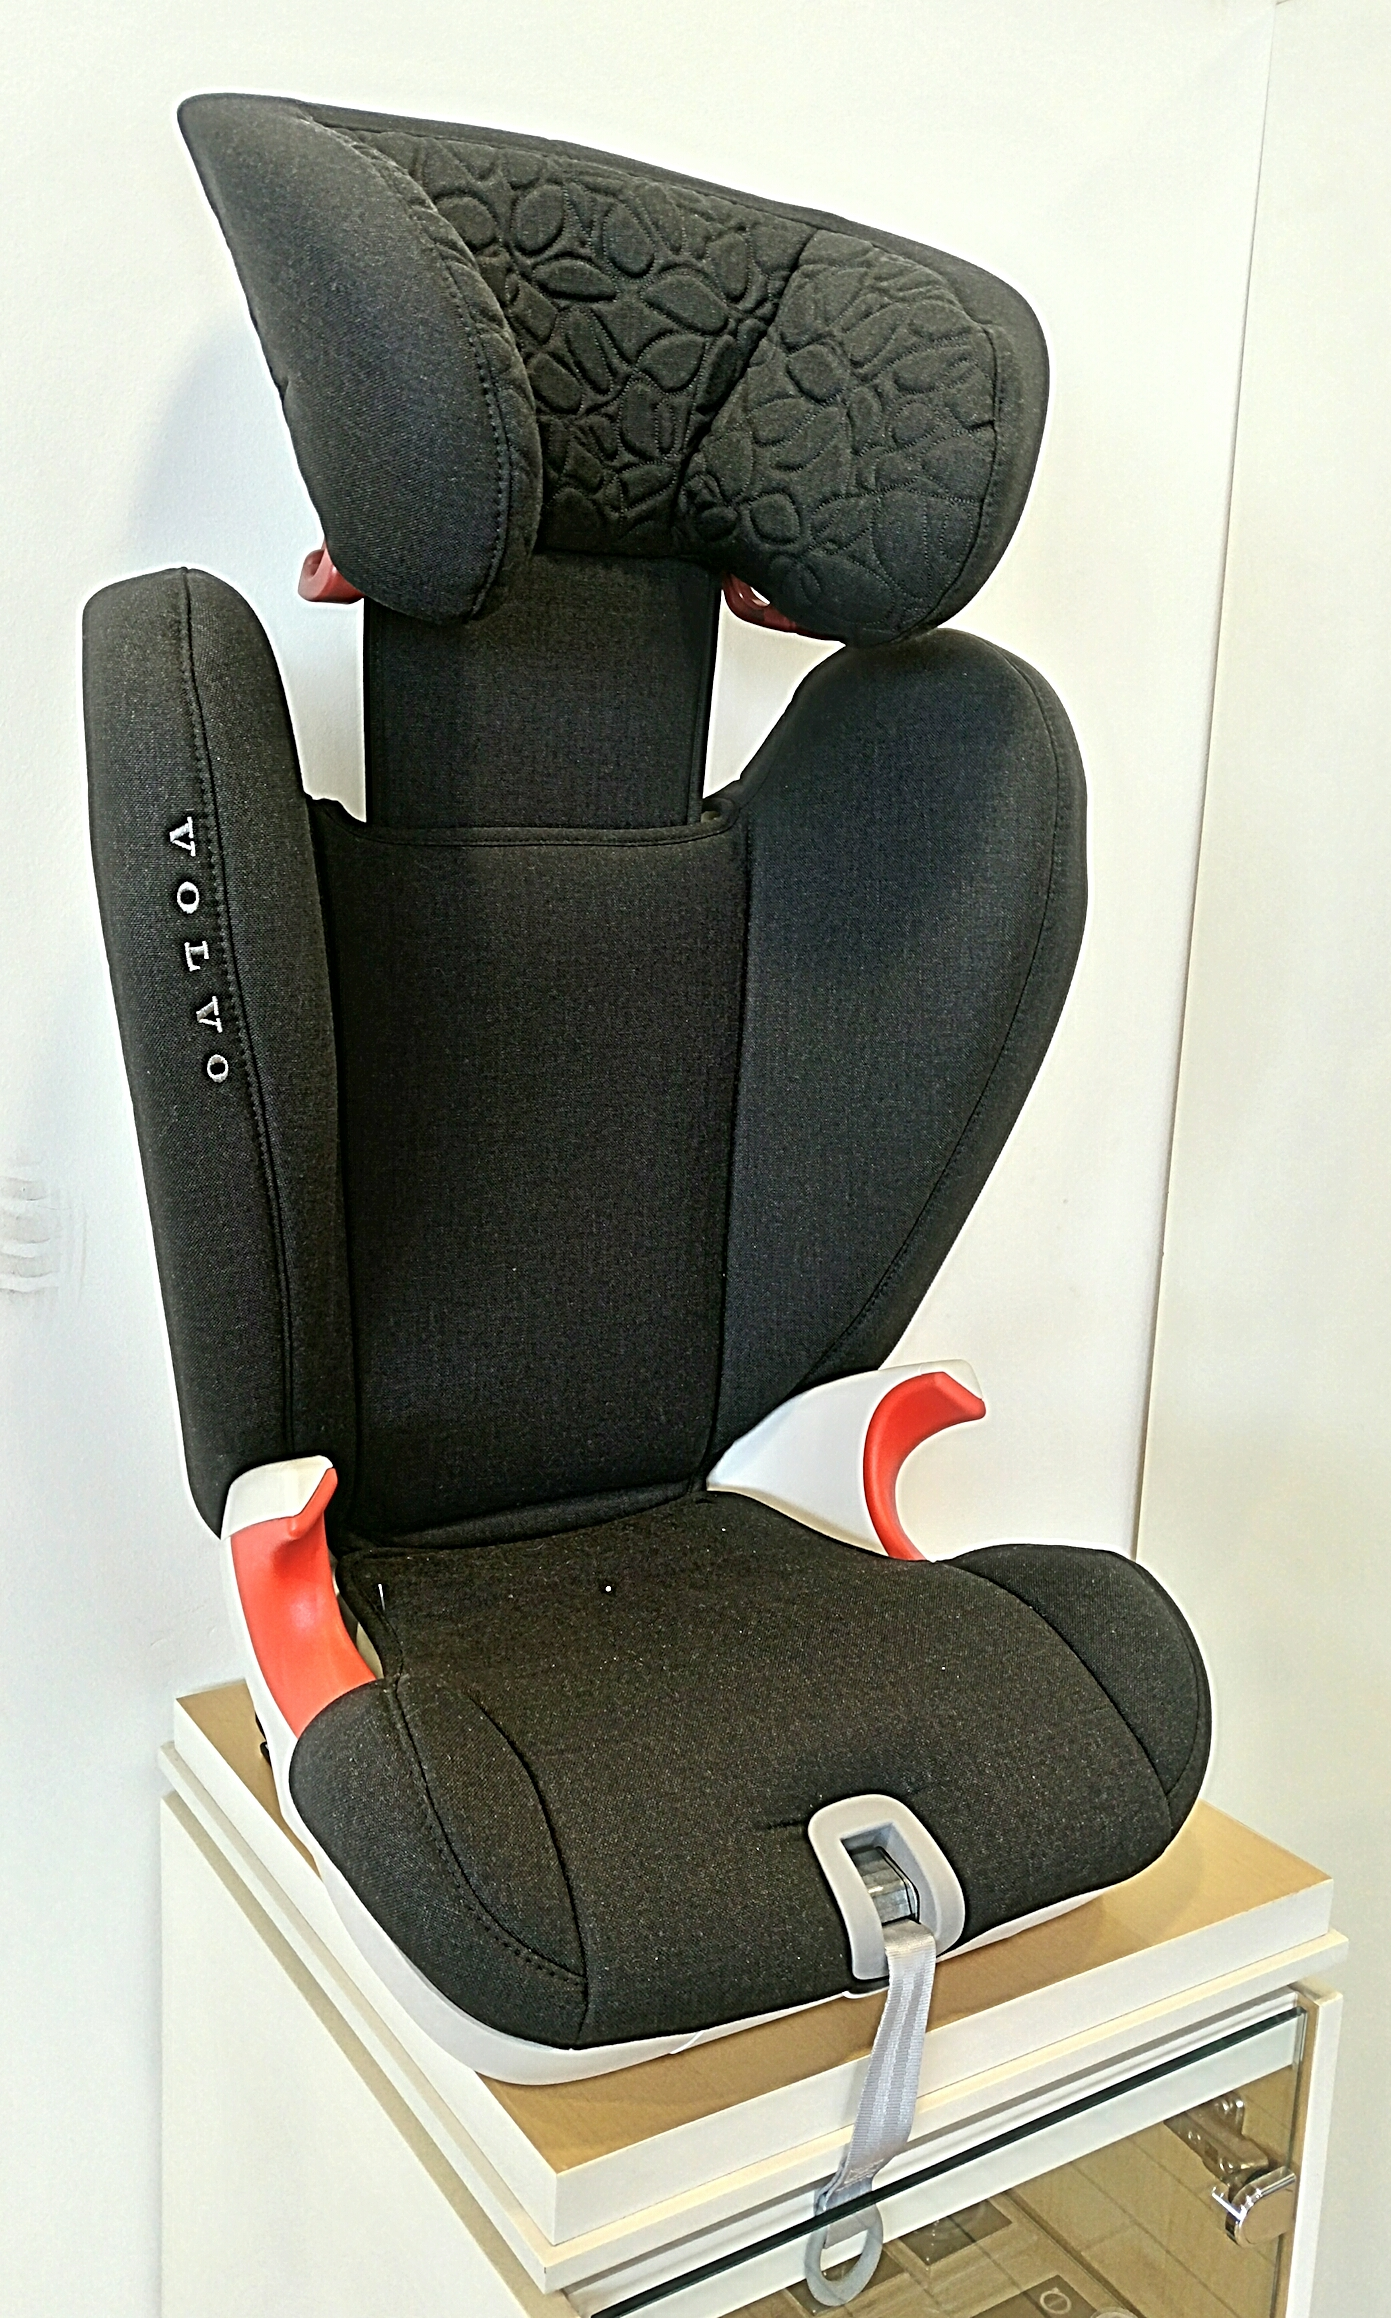 Remarkable Child Safety Seat Wikipedia Andrewgaddart Wooden Chair Designs For Living Room Andrewgaddartcom